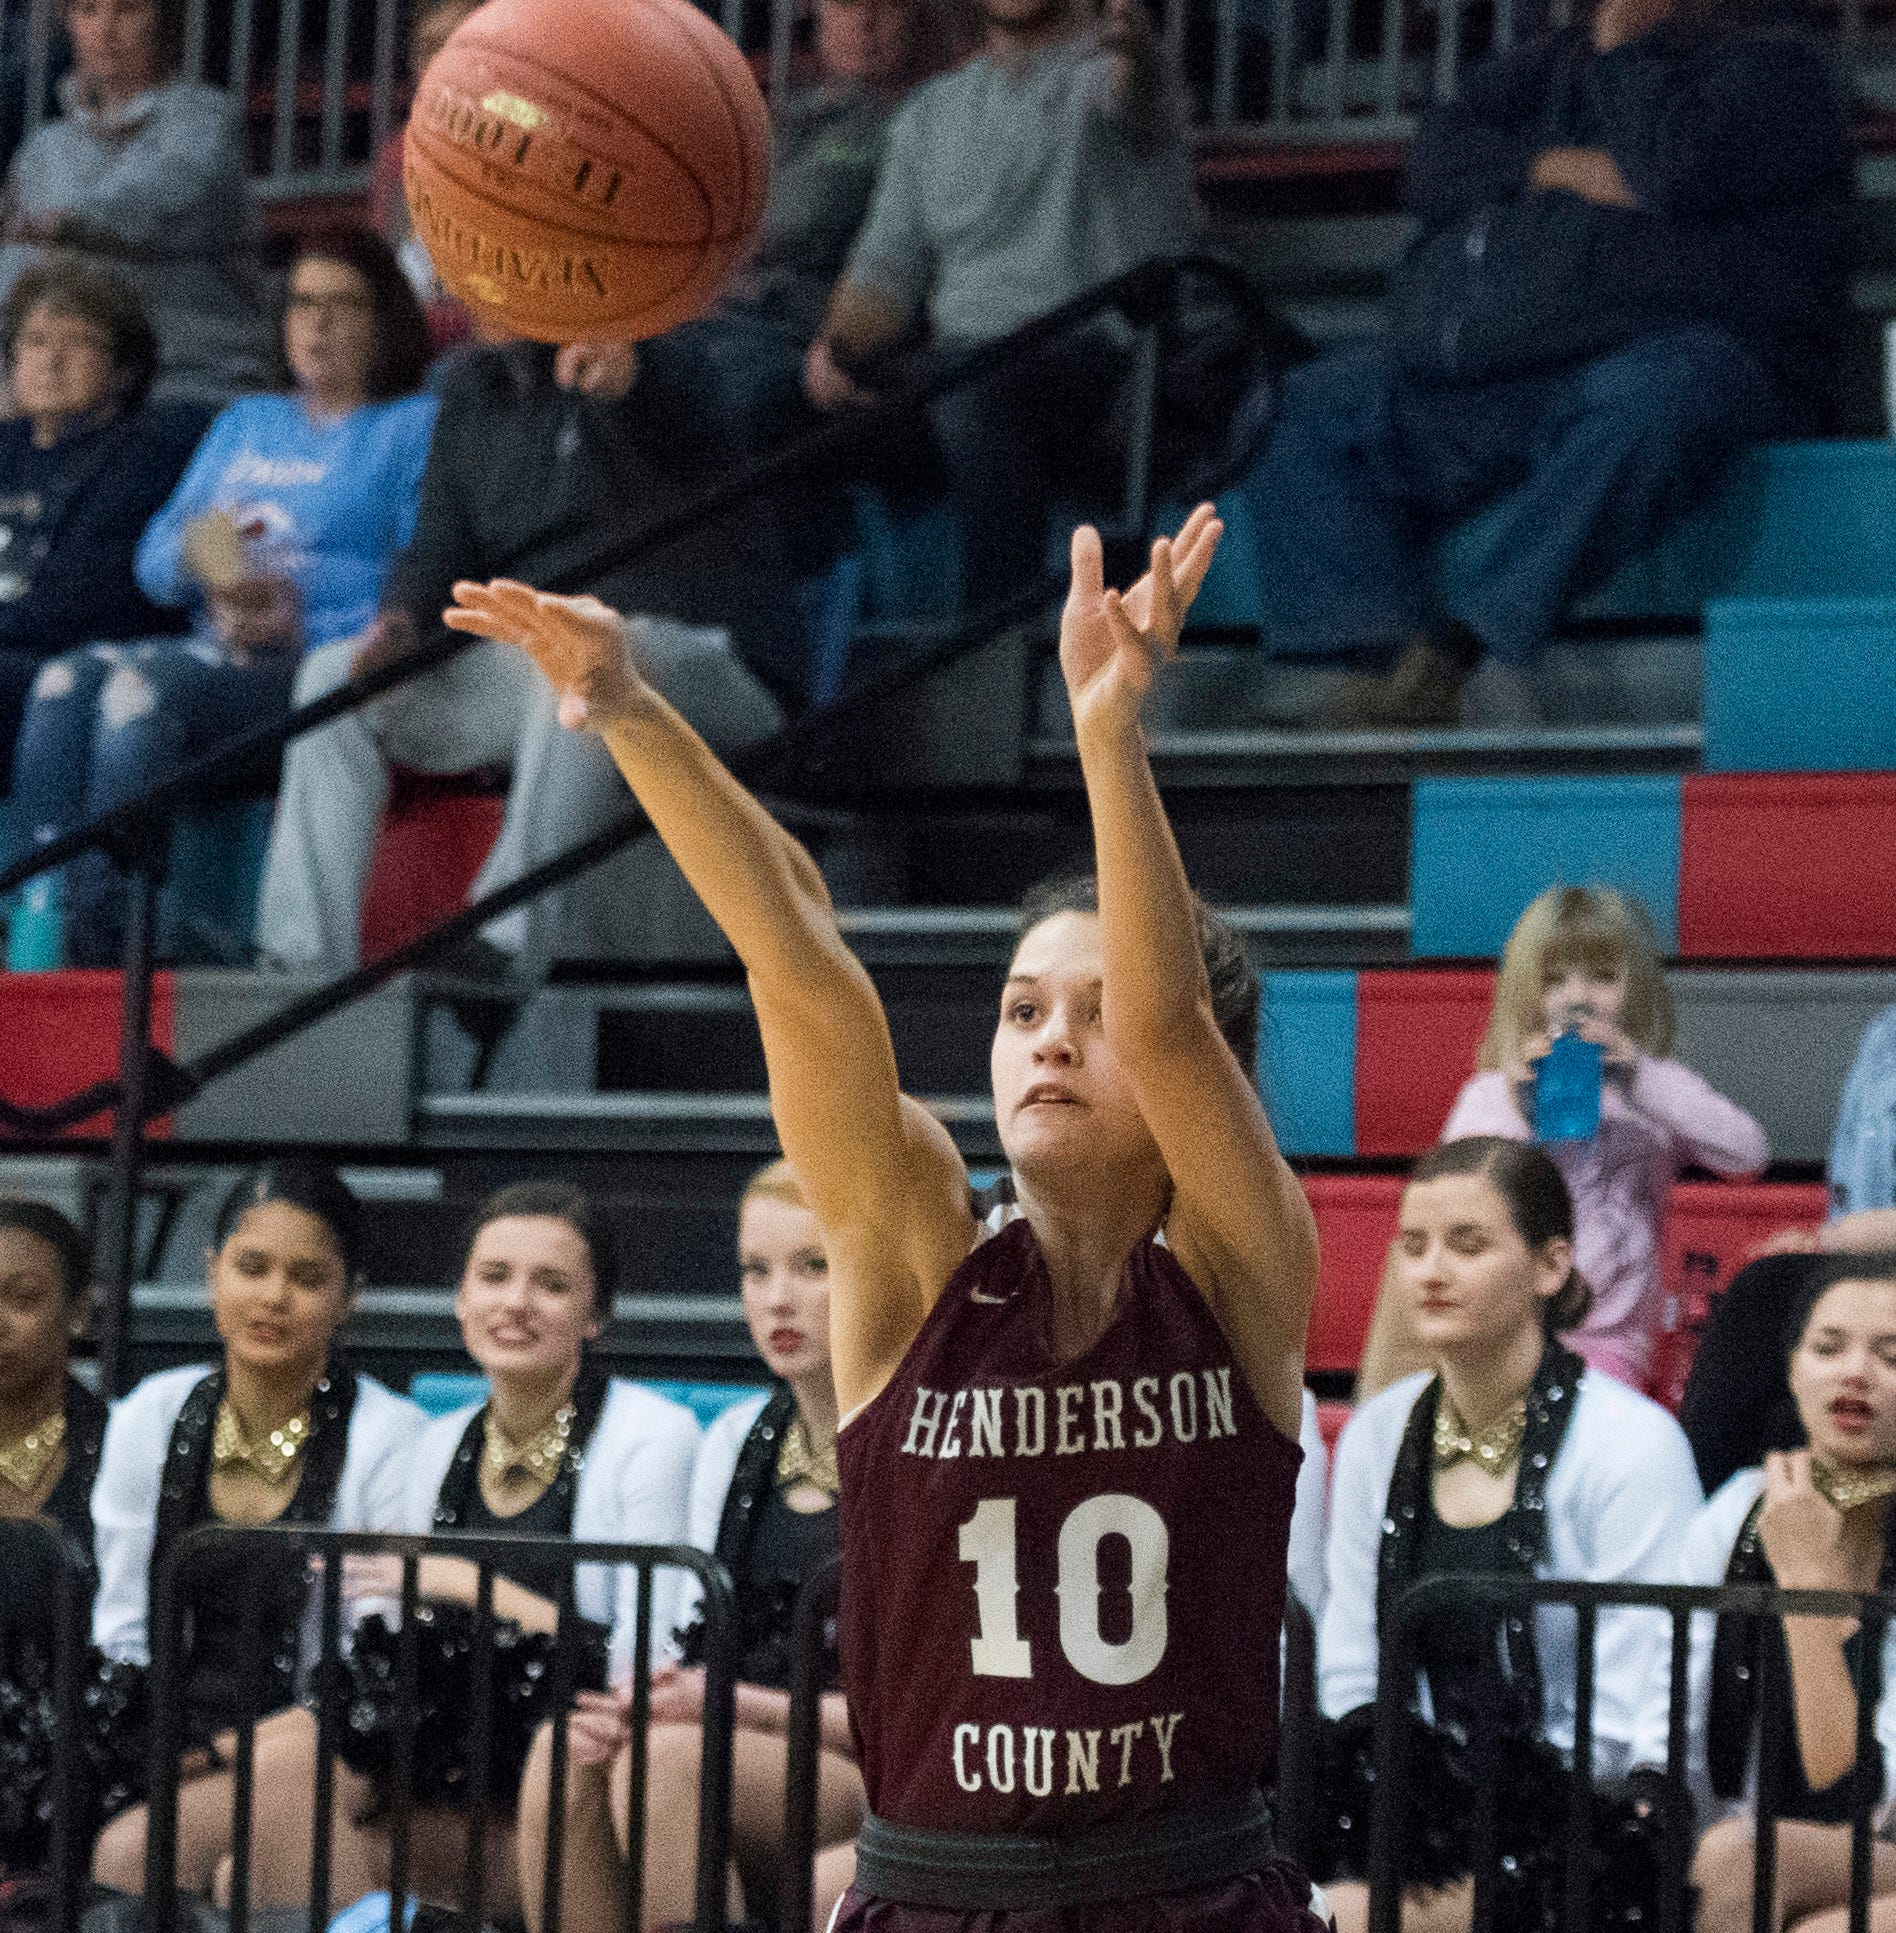 Katie Rideout looks to become more consistent shooter with Brescia basketball program